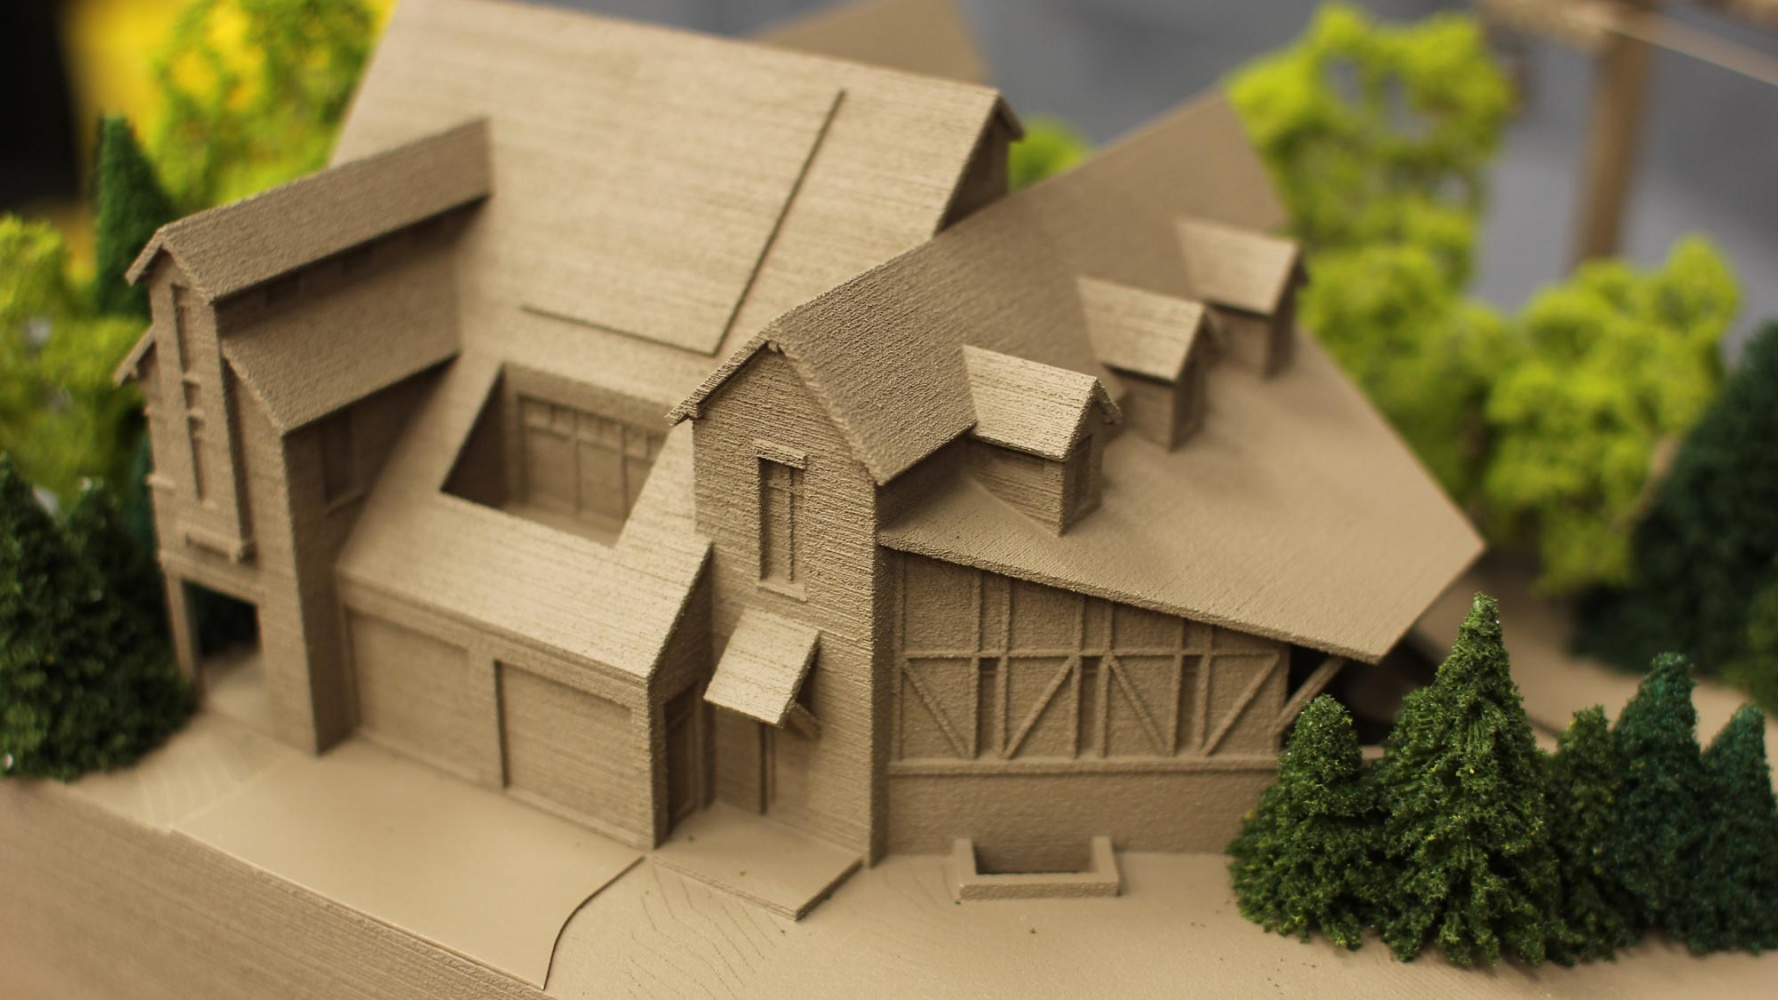 1 to 12 scale 3d print model of a home and ski slope